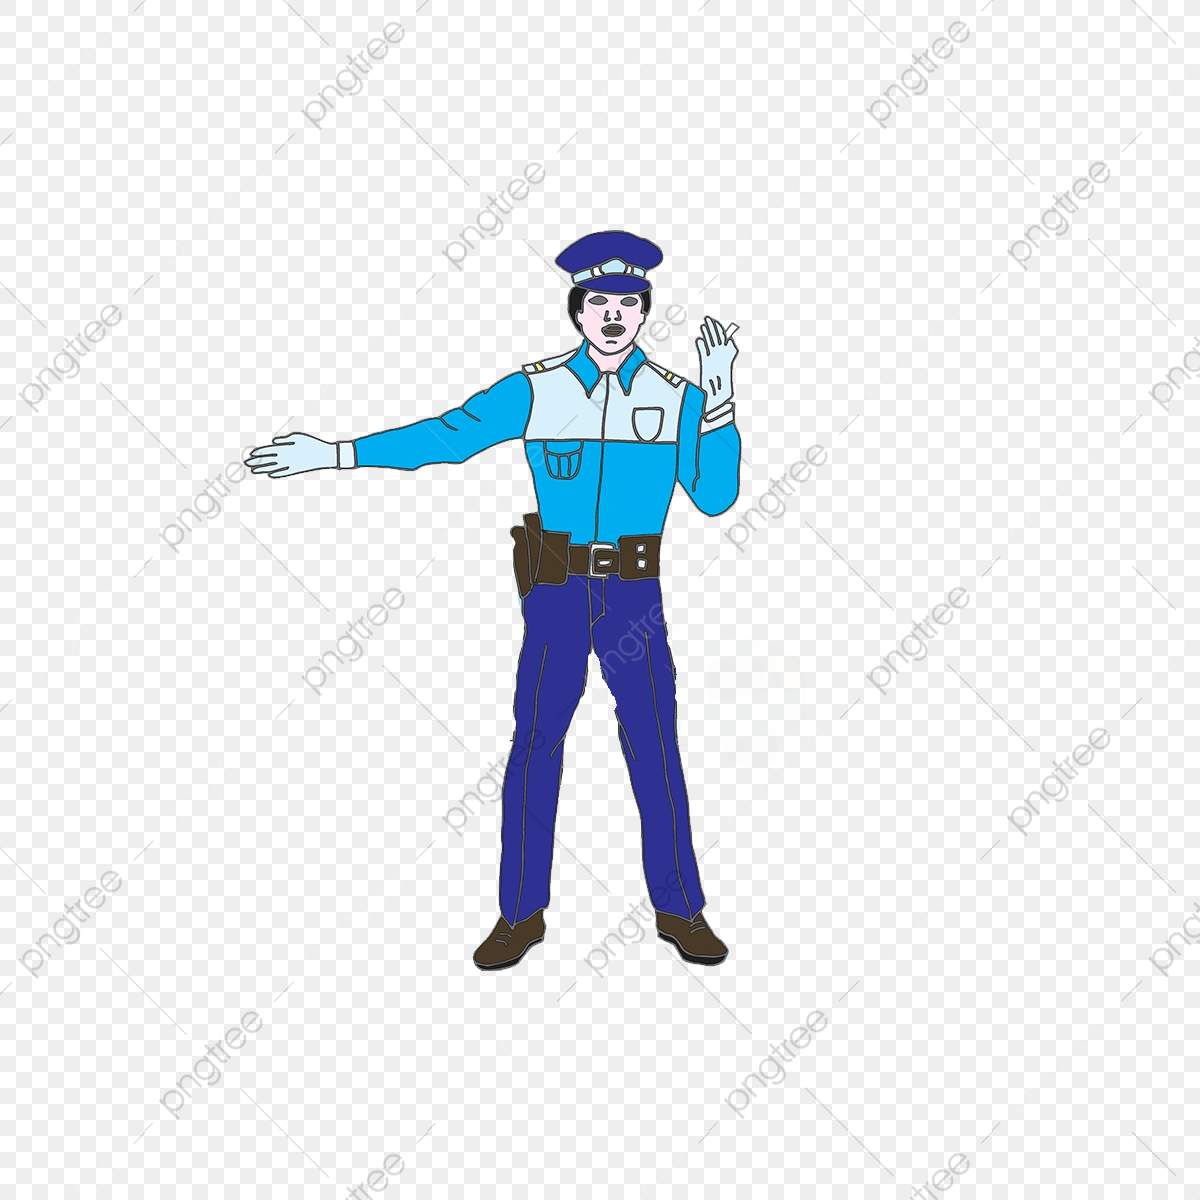 Policeman clipart cartoon, Policeman cartoon Transparent FREE for download  on WebStockReview 2020